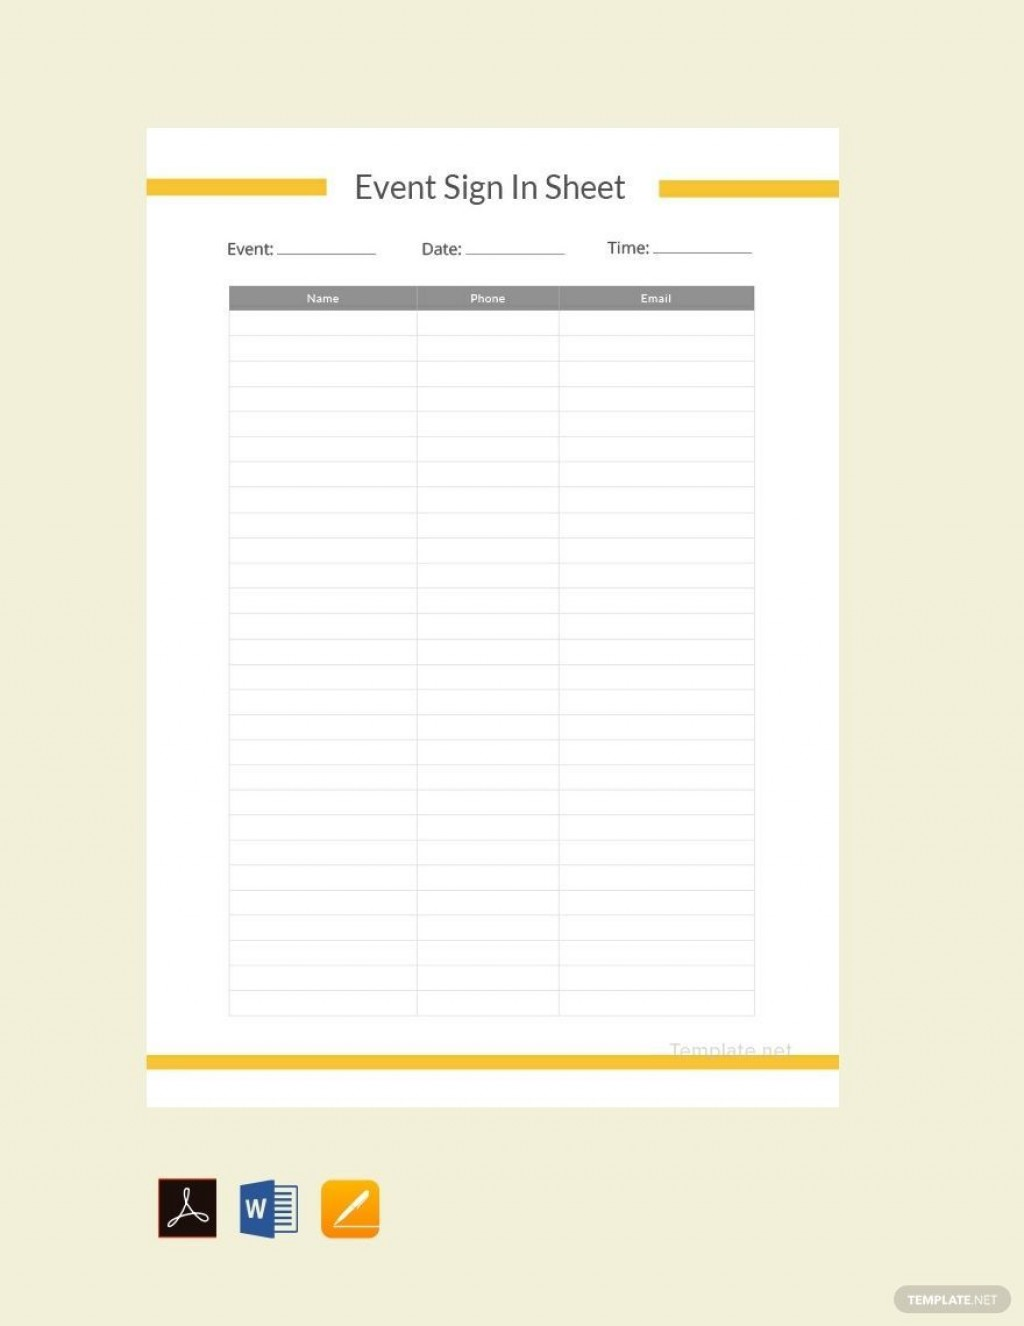 000 Exceptional Sign In Sheet Template Excel Download Image Large